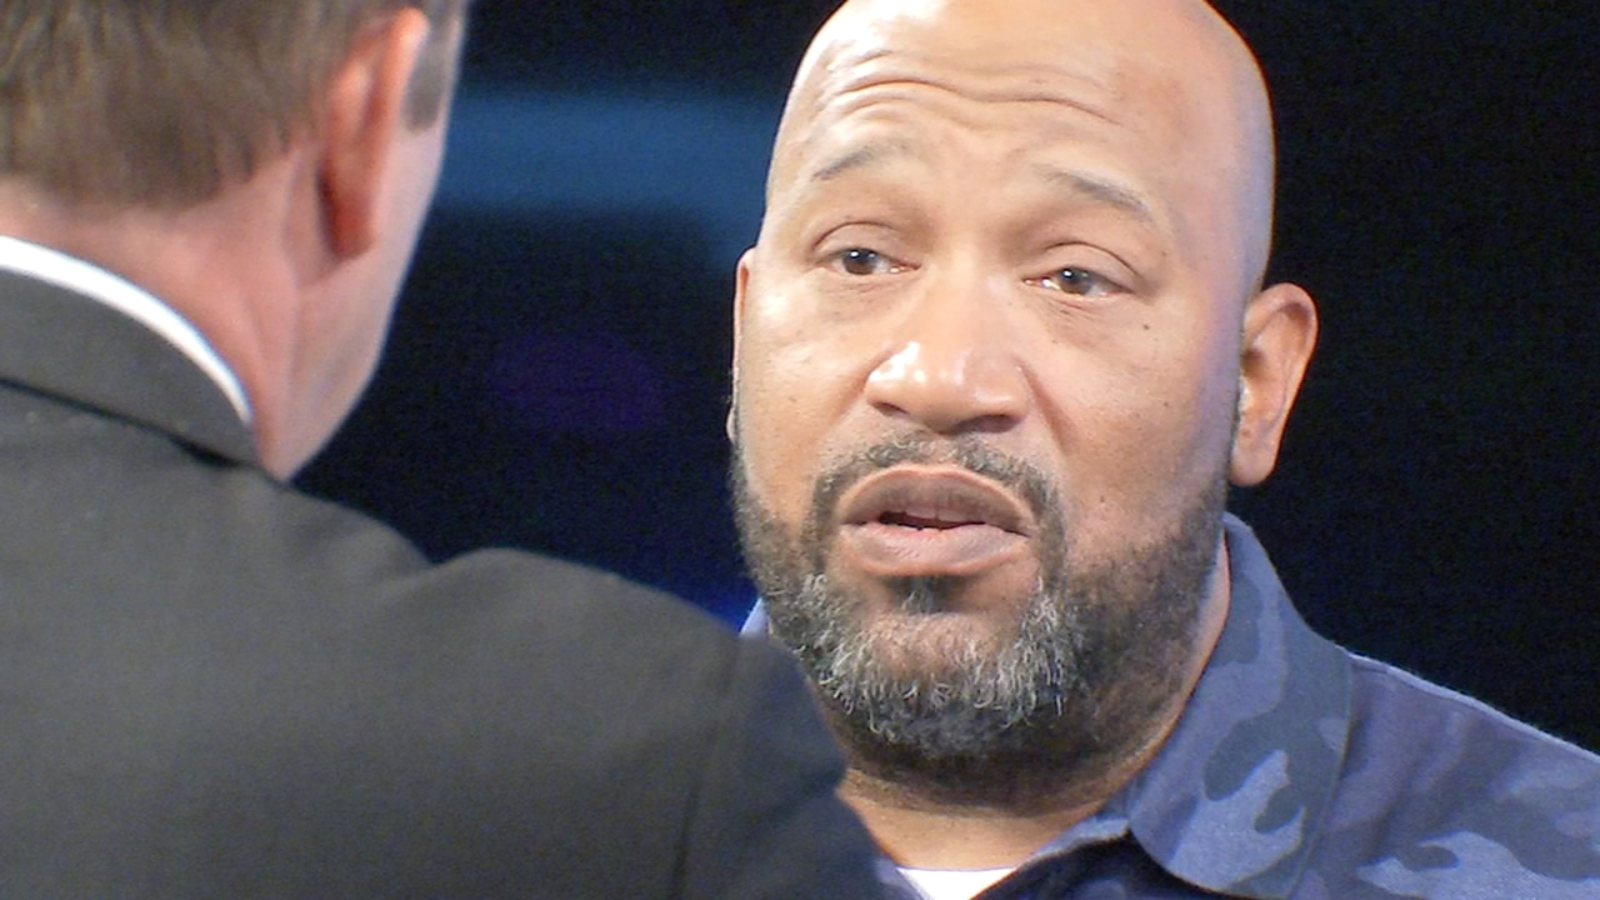 Bun B says 'maybe' to mayoral run as he backs Rodney Reed - KTRK-TV